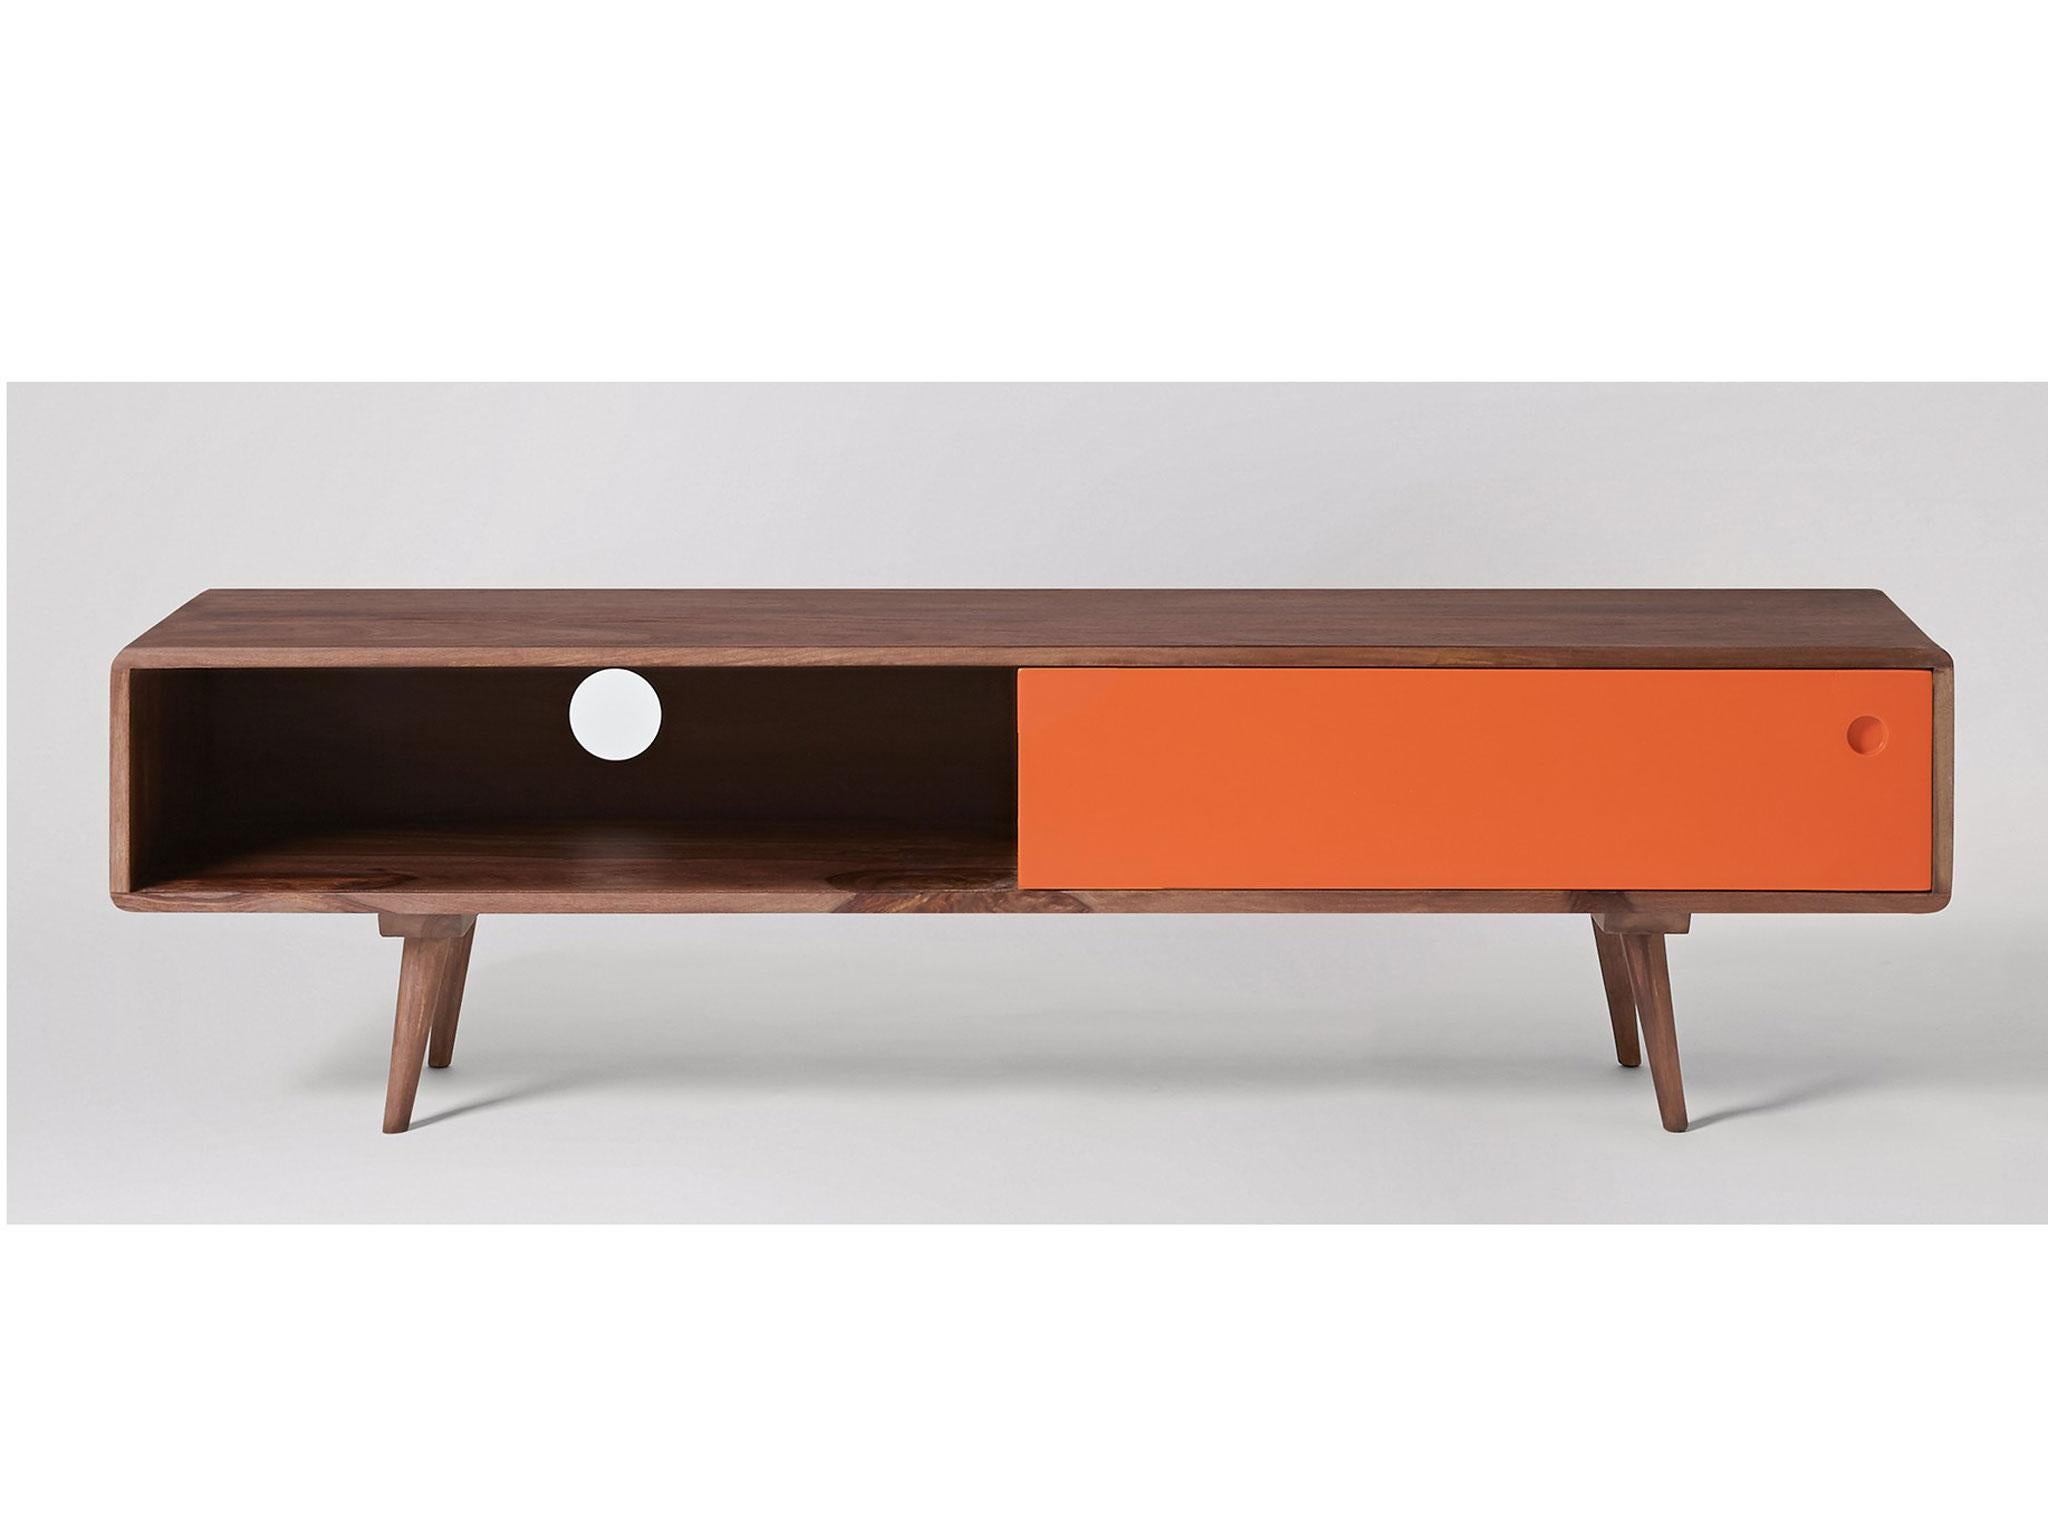 Harking Back To The Sideboards Heyday This Mid Century Style Unit From Swoon Editions Has A Retro Feel It Rosewood Frame With Engineered Panel